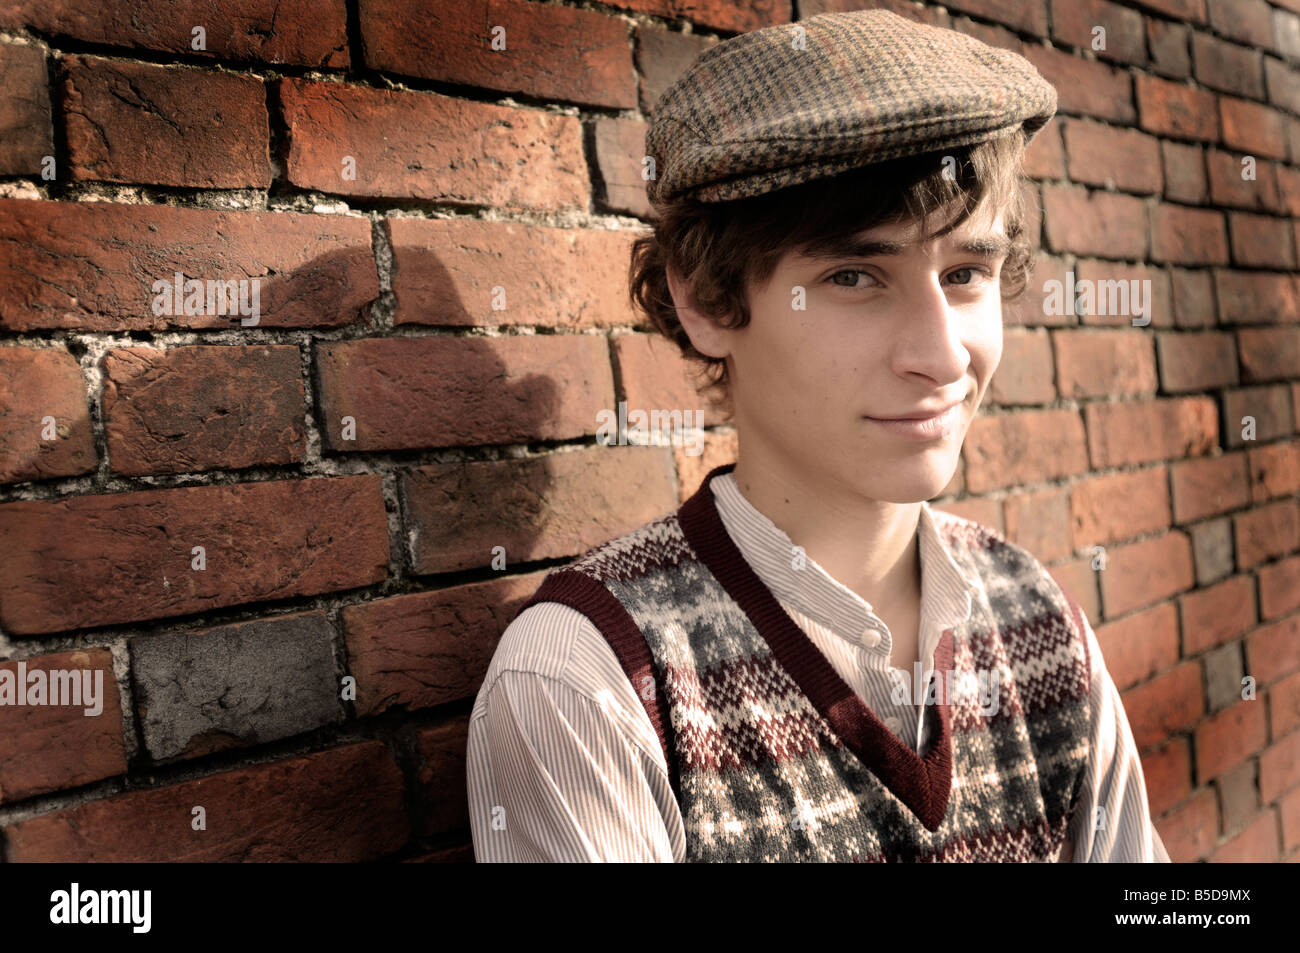 Royalty free photograph of British boy evacuee in wartime standing by brick wall looking lonely with 1940s style - Stock Image